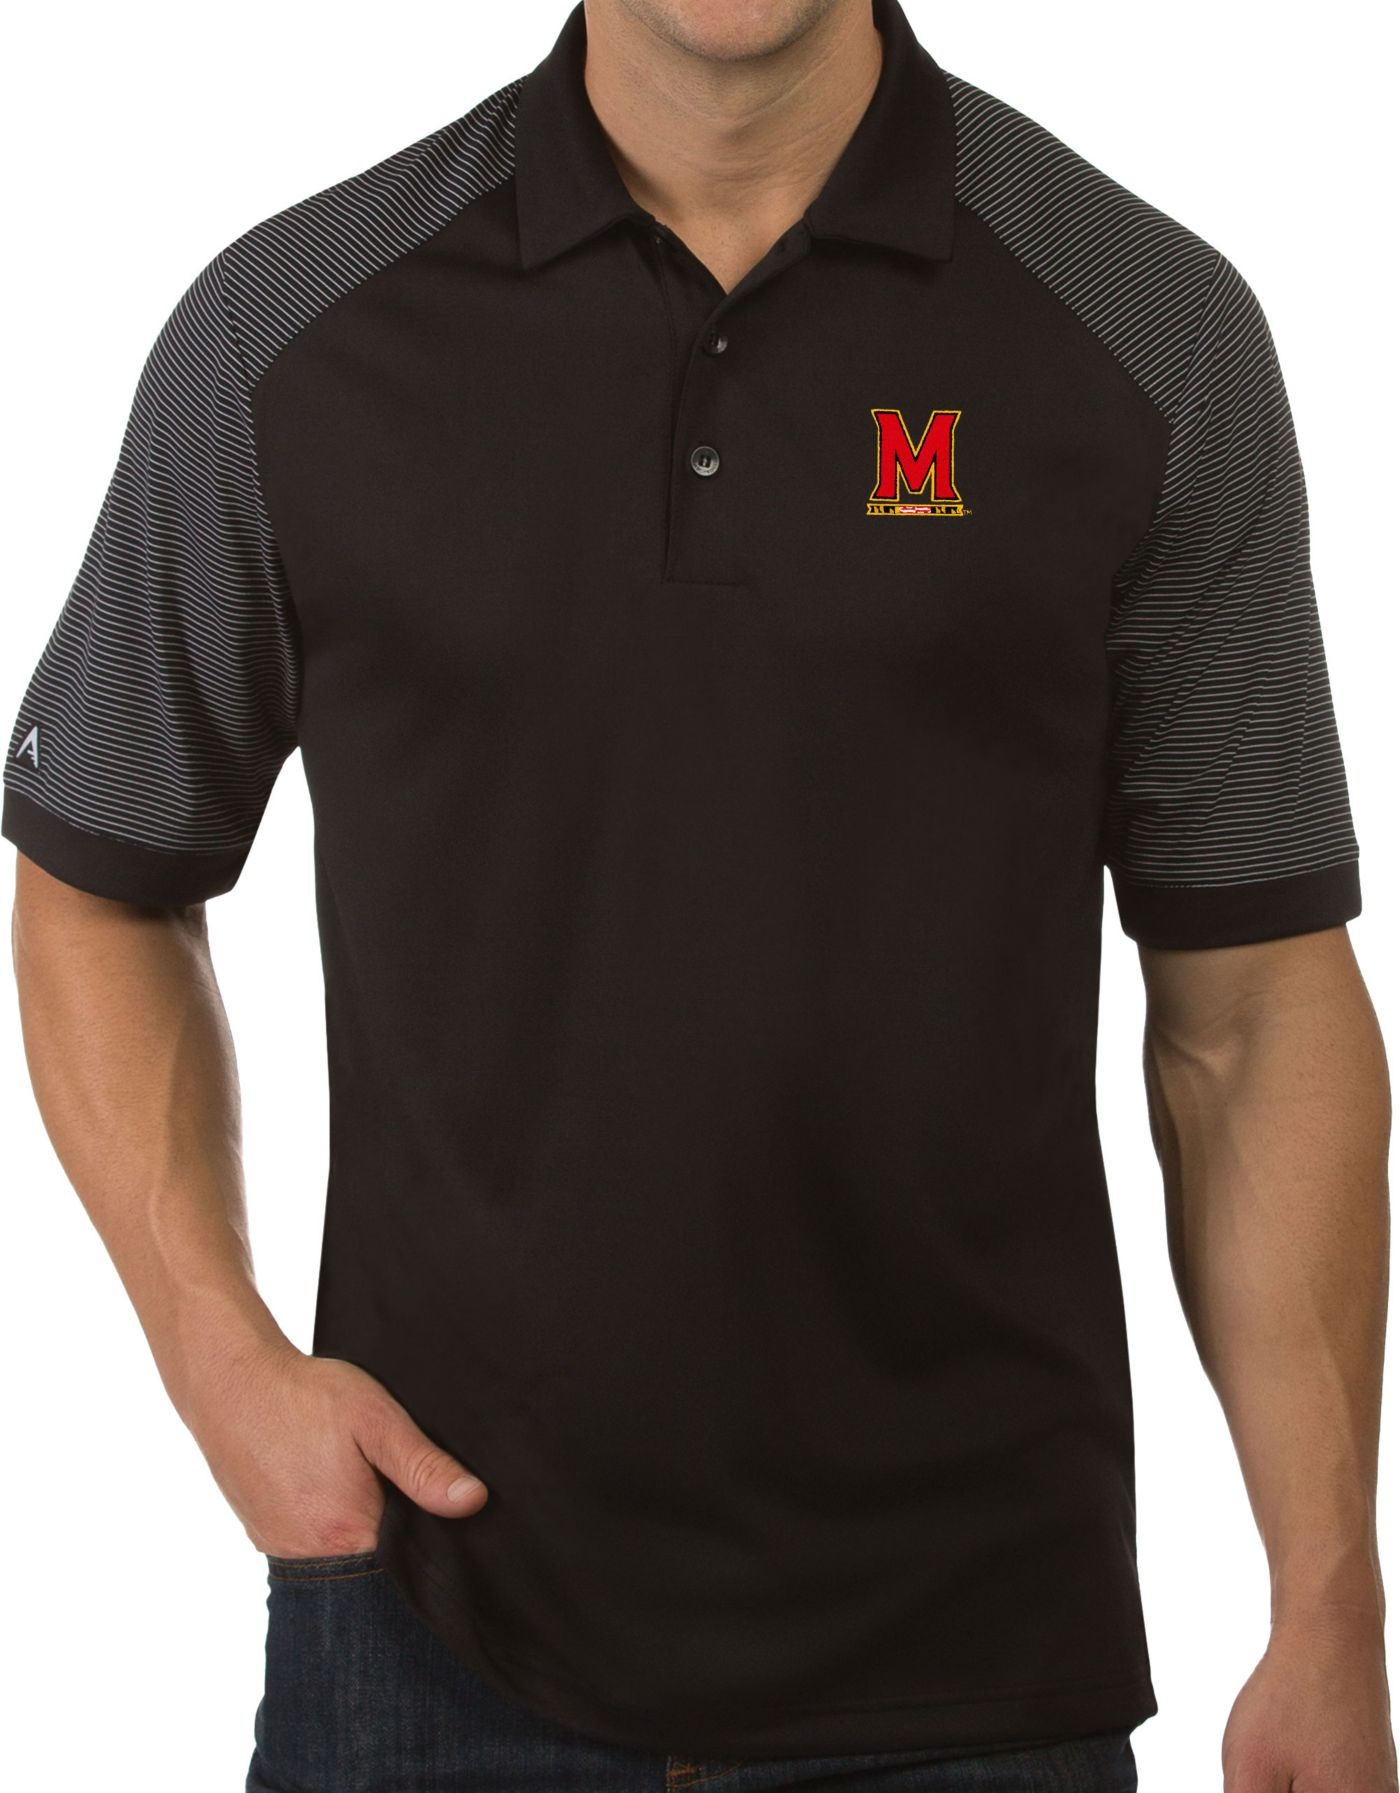 Antigua Men's Maryland Terrapins Engage Performance Black Polo